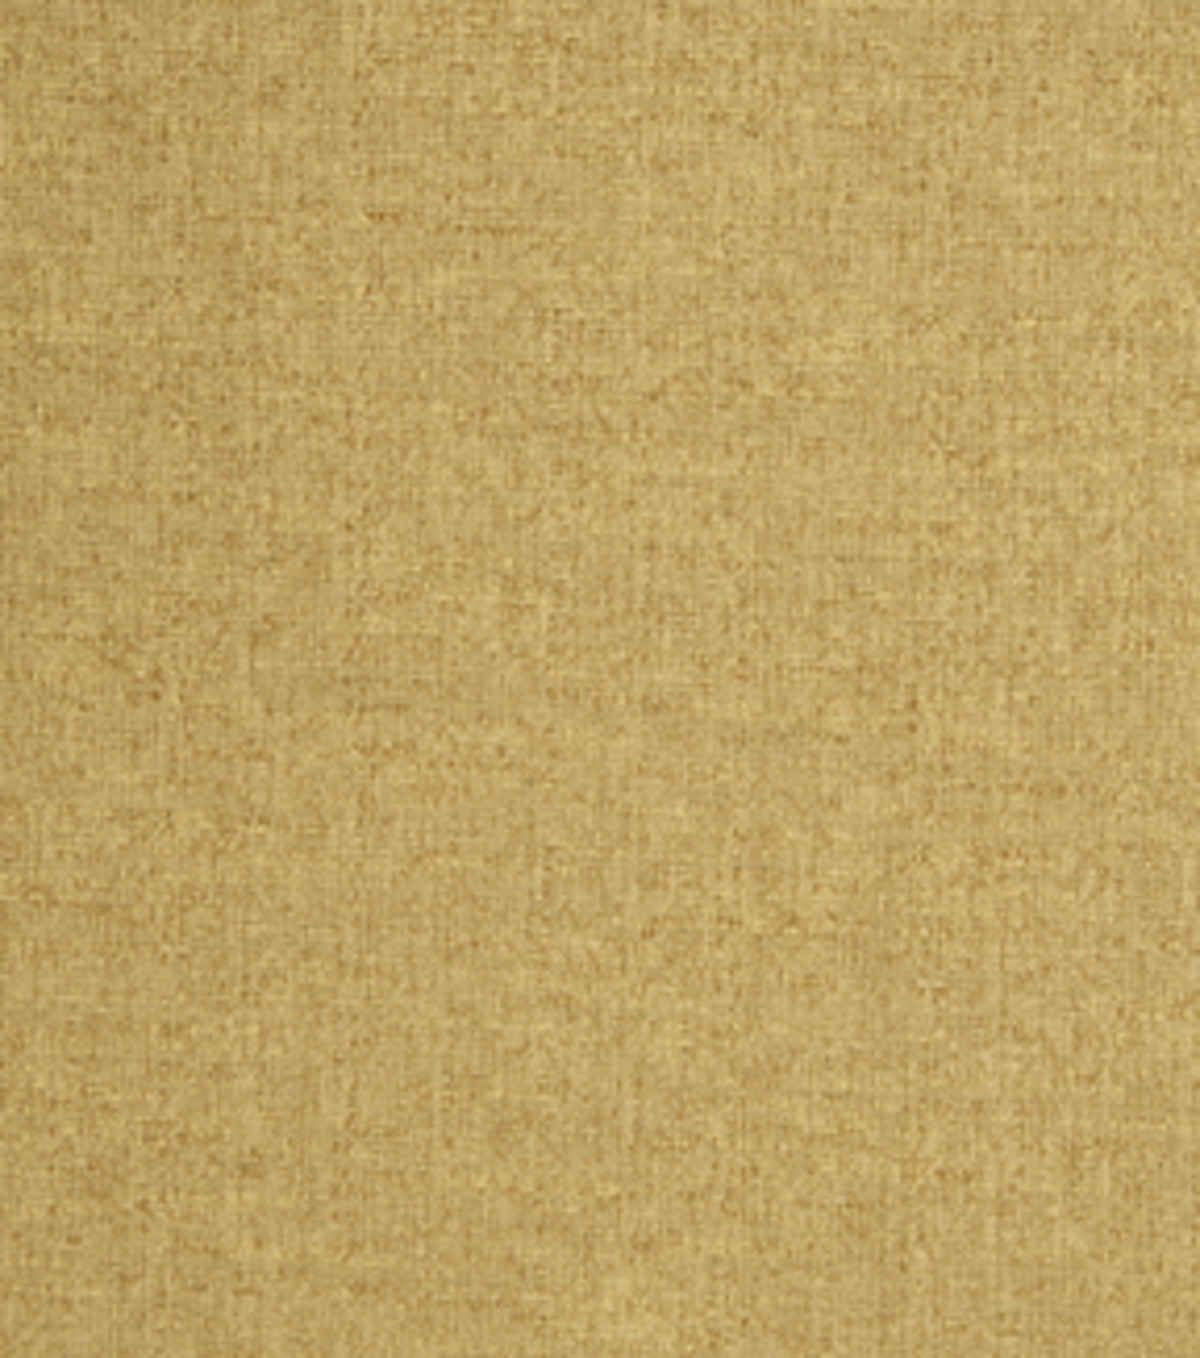 Home Decor 8\u0022x8\u0022 Fabric Swatch-Signature Series Texture Harvest